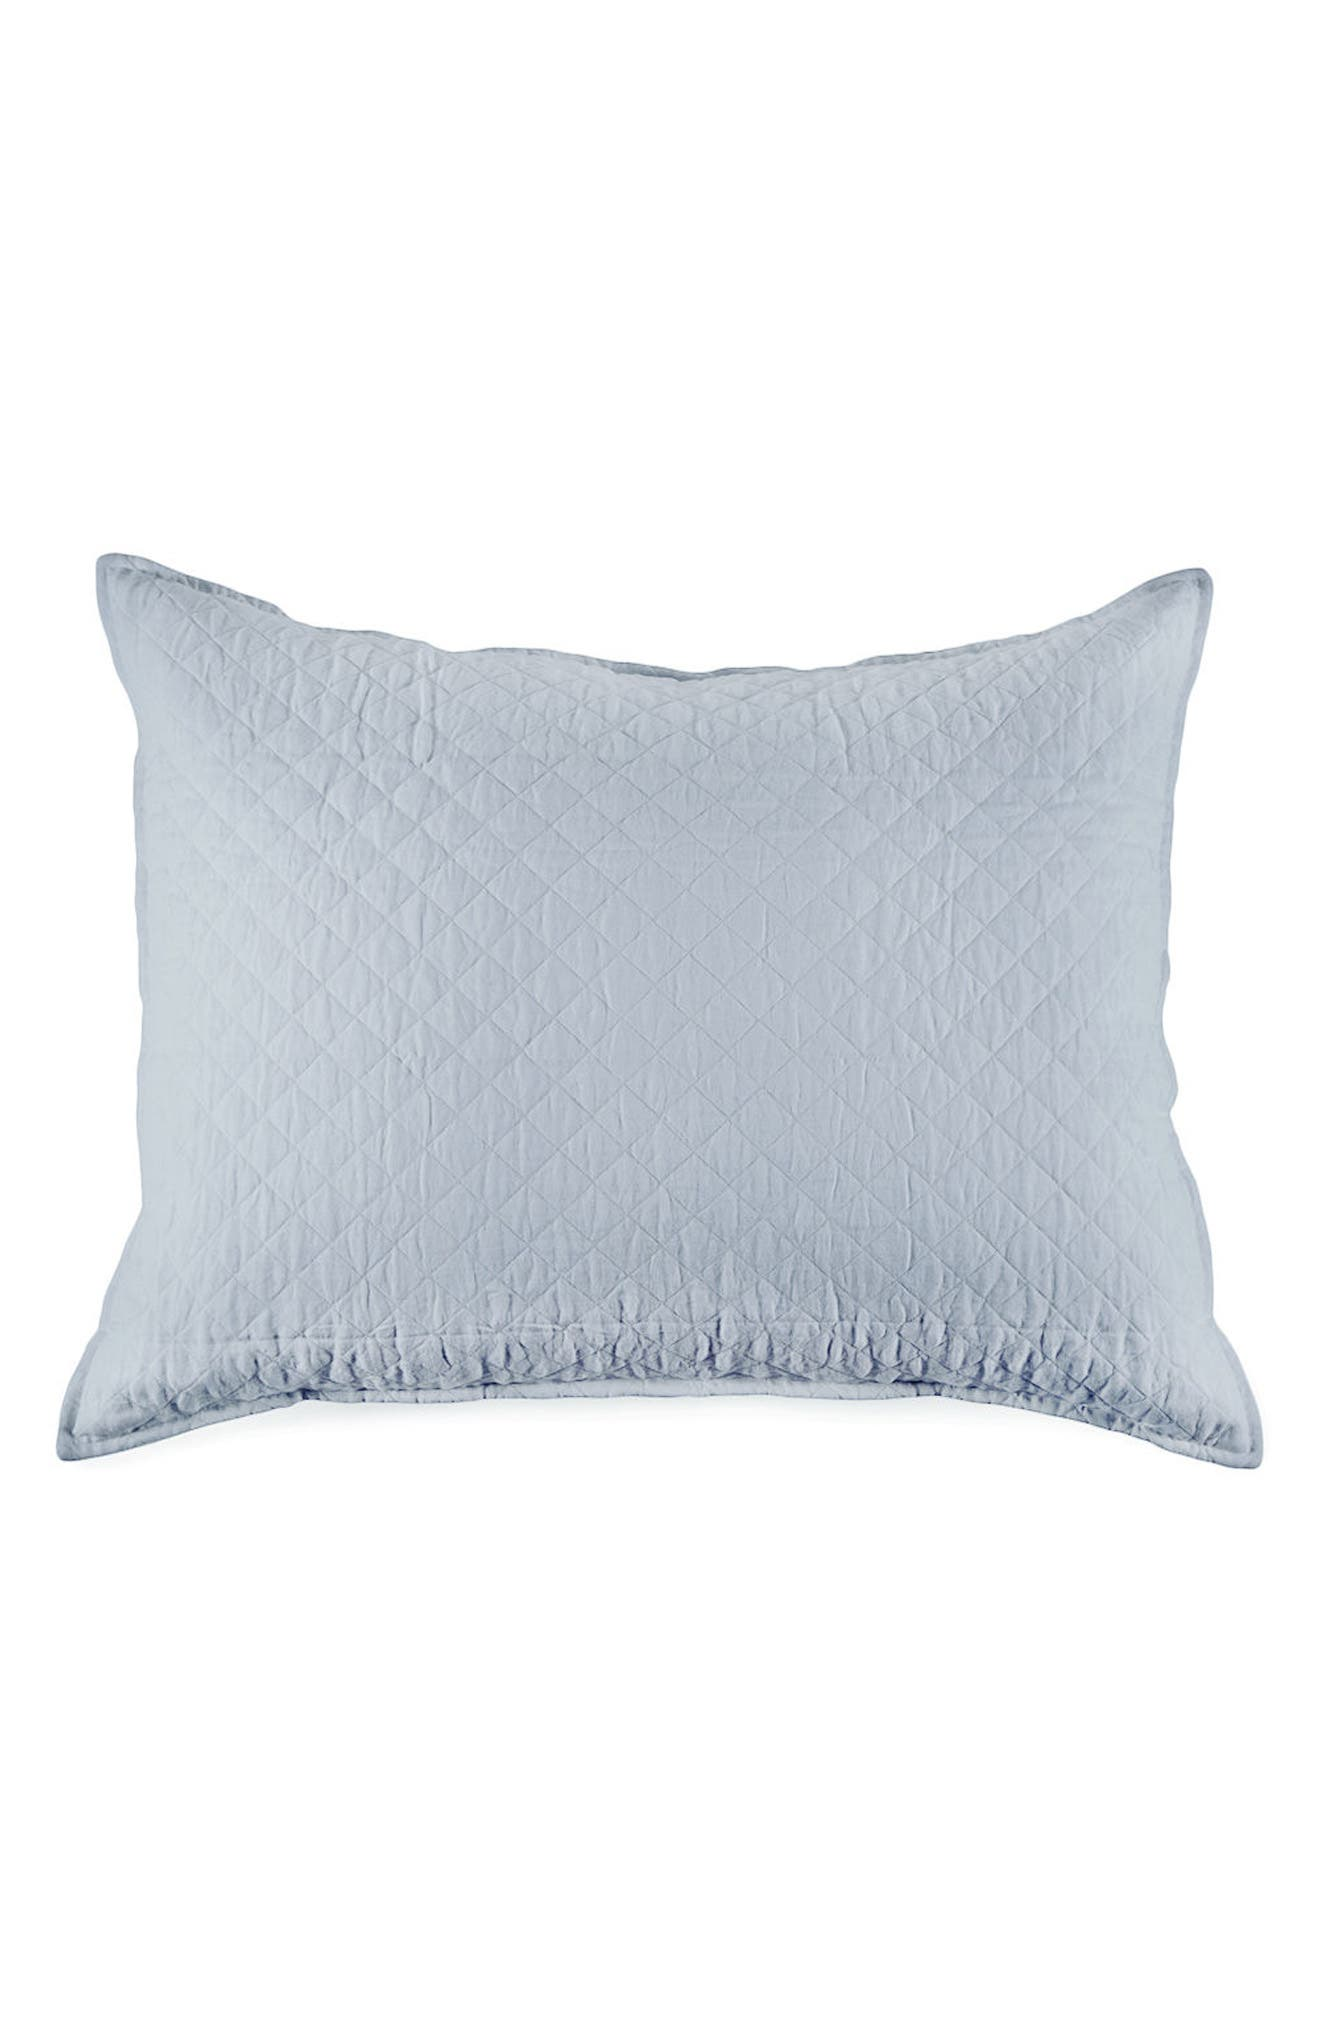 Alternate Image 1 Selected - Pom Pom at Home Hampton Big Accent Pillow